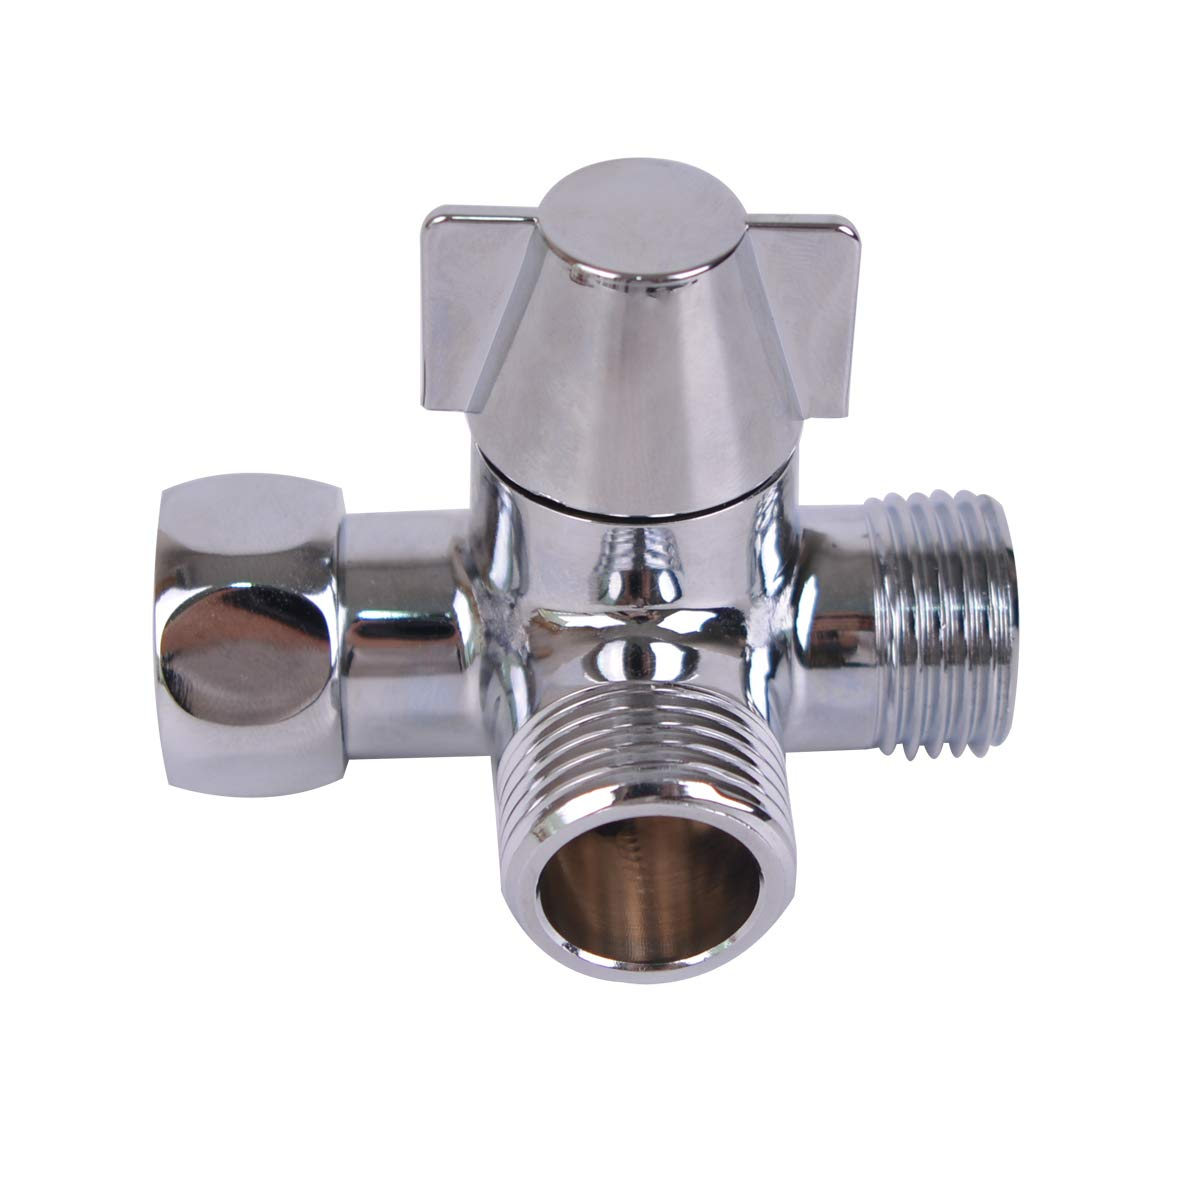 Baitaihem G1/2' Universal 3 Way Brass Shower Diverter Valve Handshower for Handshower Universal Showering Components